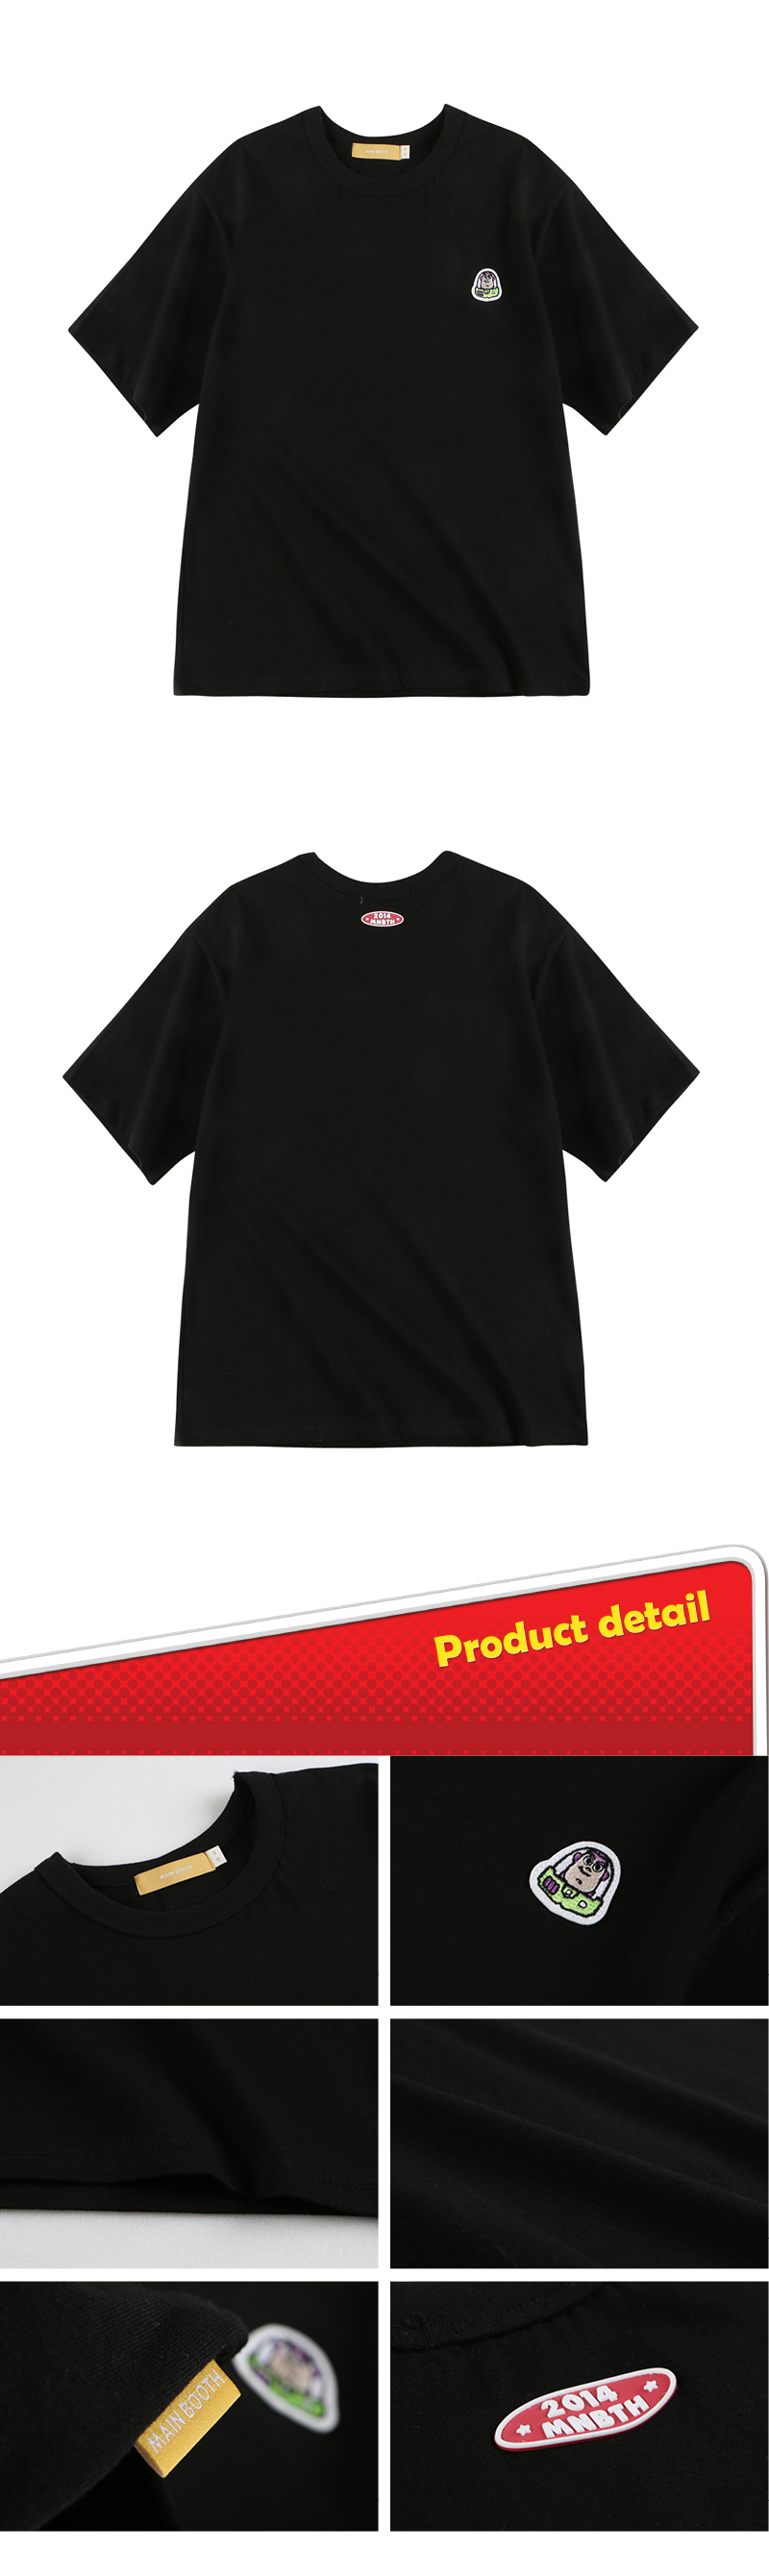 메인부스(MAINBOOTH) Toy Face Basic T-shirt(BLACK)